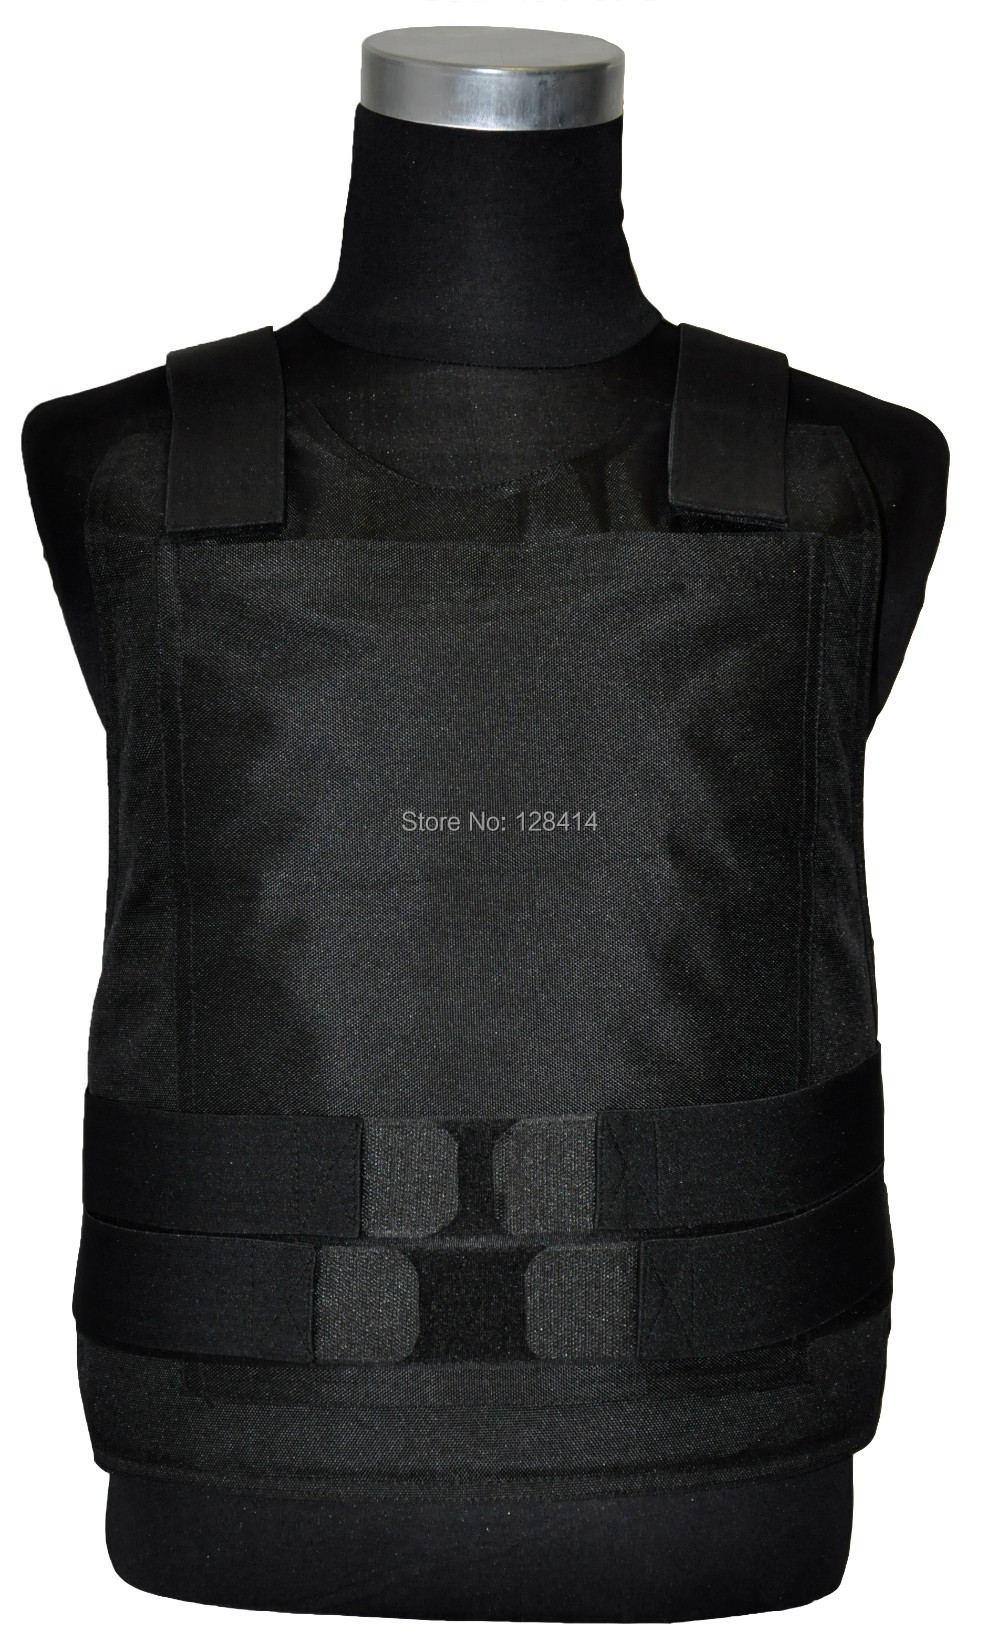 USA Tested NIJ 3A Size S Concealable Twaron Aramid Bulletproof Vest/ Size S NIJ IIIA Covert Ballistic Vest Bullet Proof Vest bulletproof vest military tactical army concealable bullet proof bullet proof vest chaleco antibalas low profile body armor